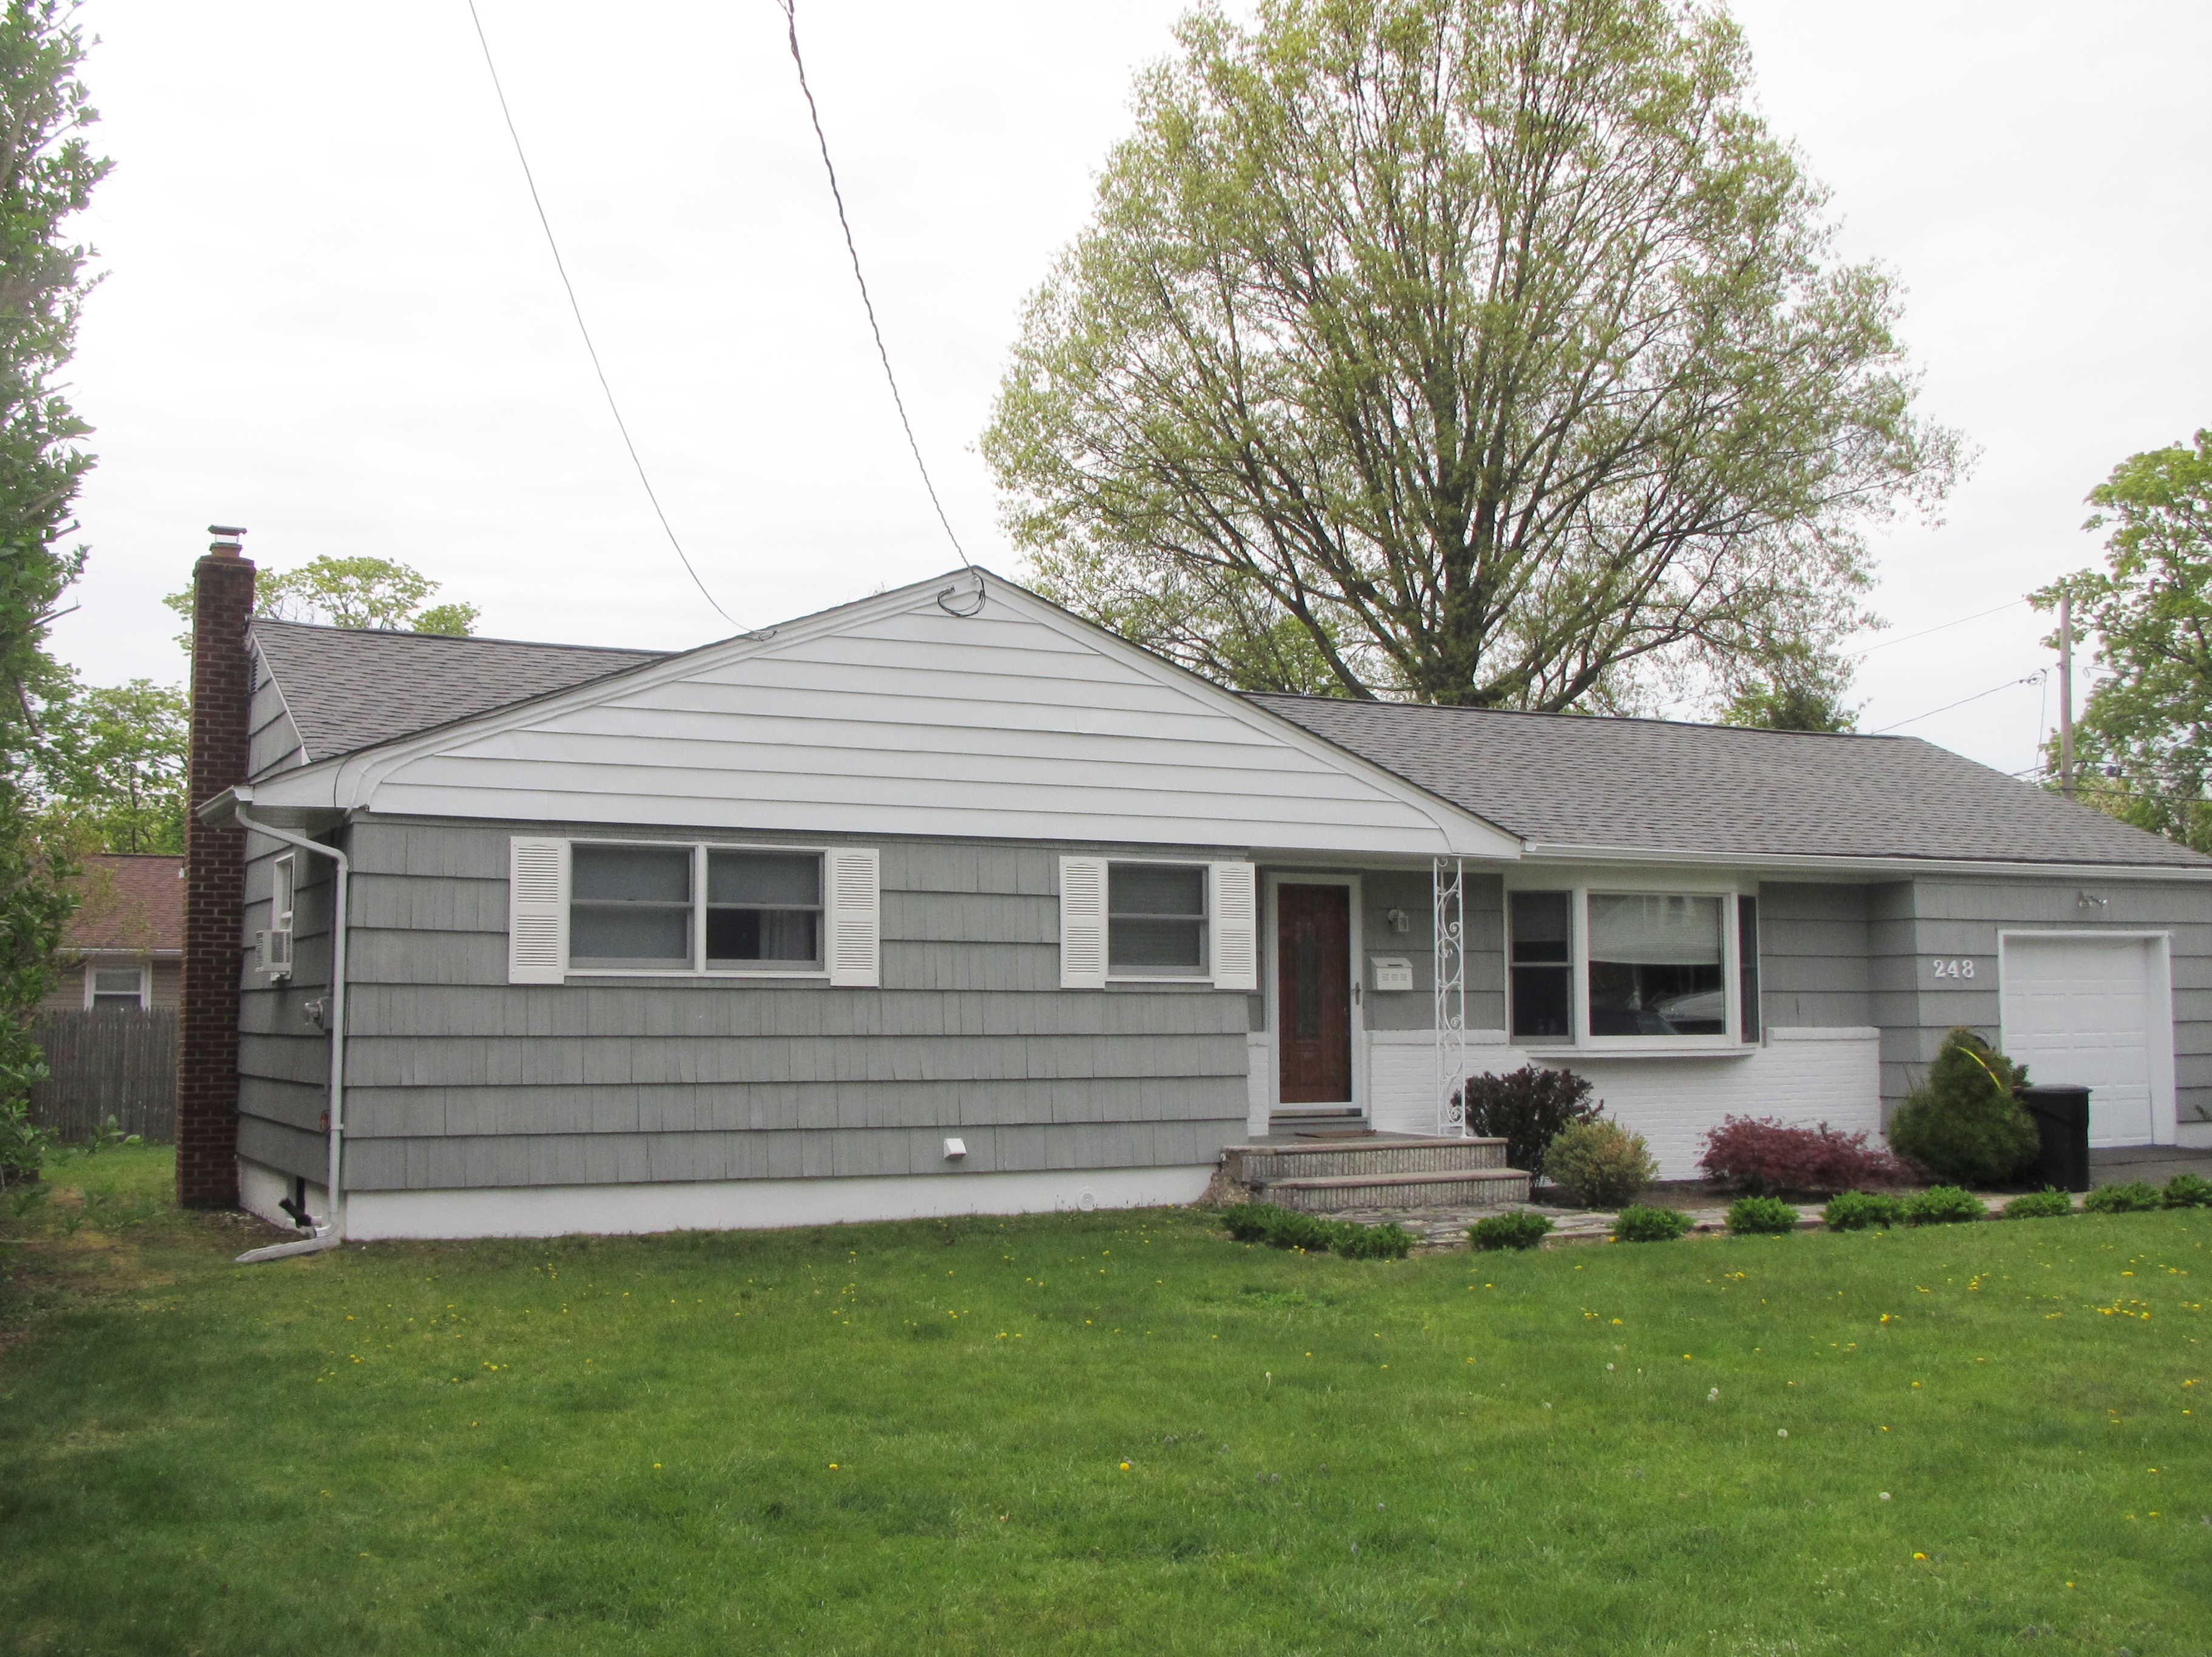 Single Family Home for Sale at Ranch 248 3rd Ave St. James, New York 11780 United States